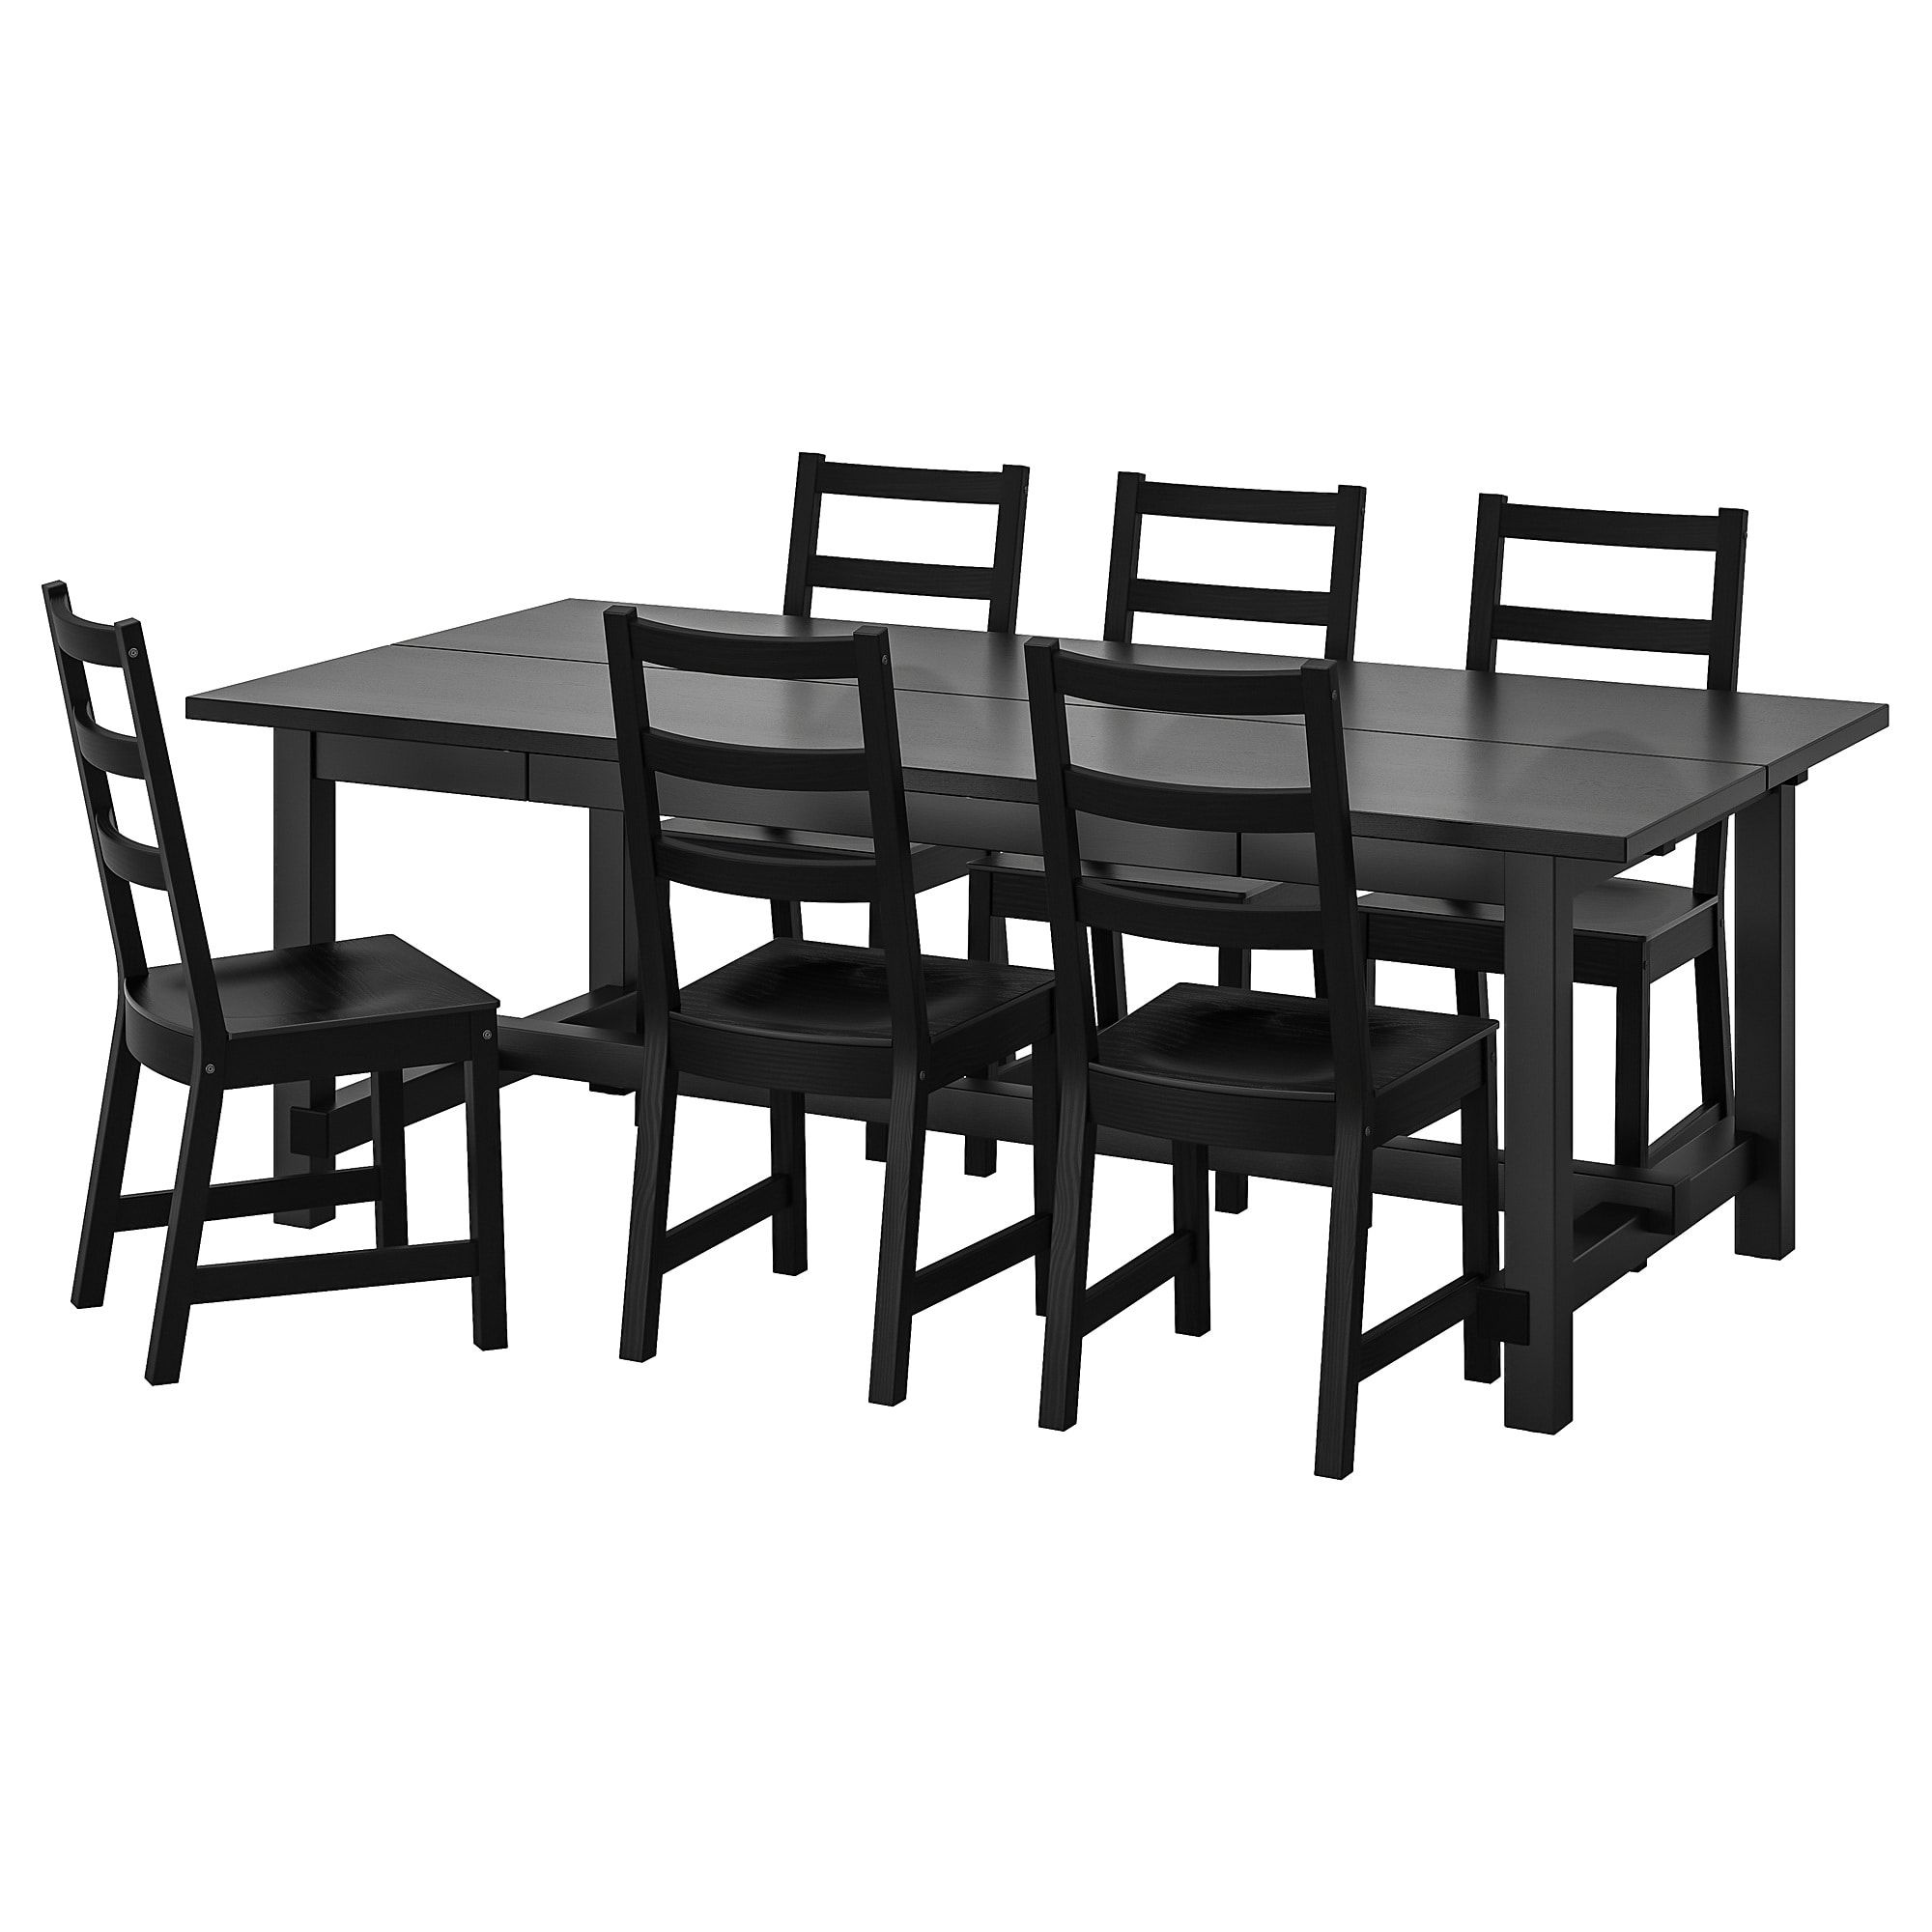 NORDVIKEN / NORDVIKEN Table and 6 chairs black, black 82